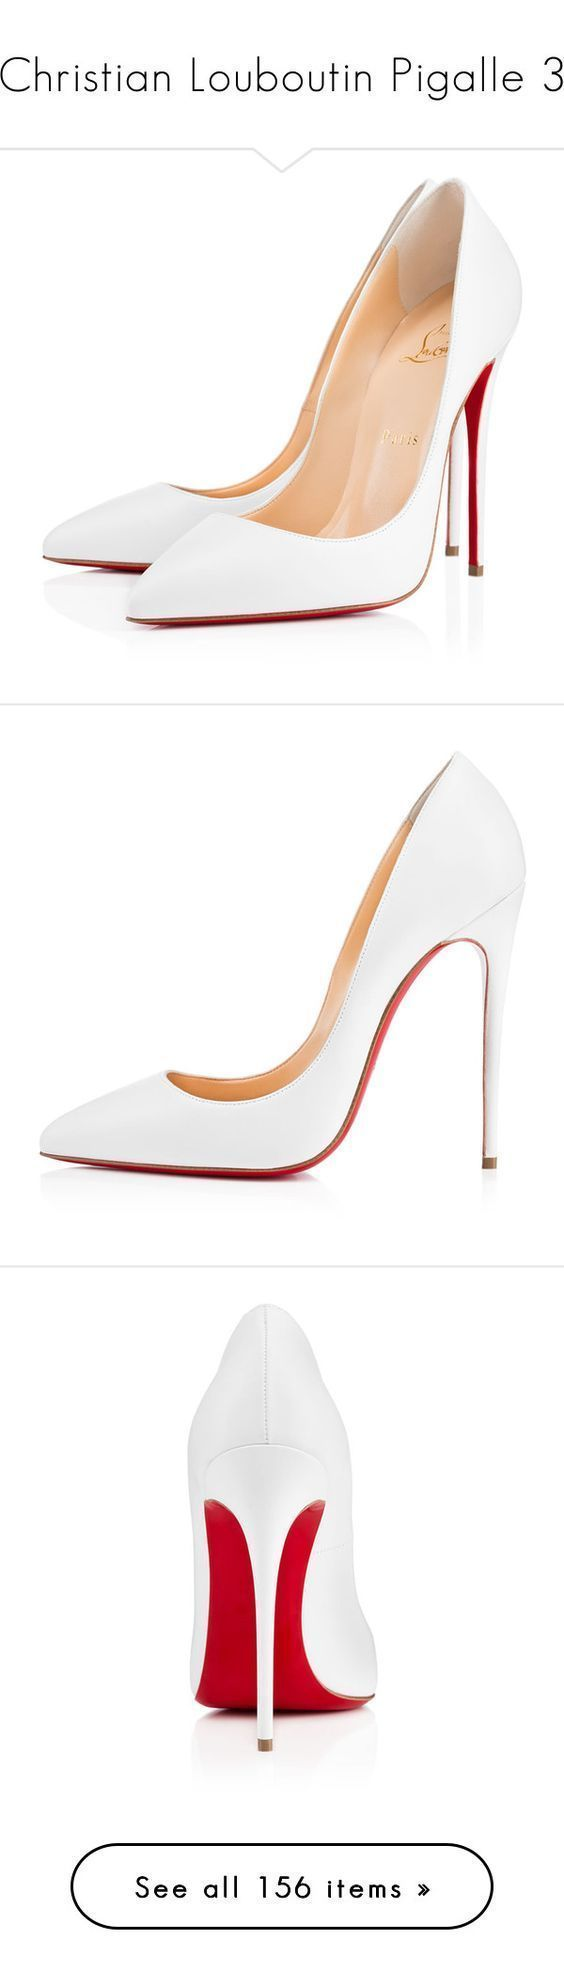 """""""Christian Louboutin Pigalle 3"""" by enchantedxox ❤ liked on Polyvore featuring shoes, pumps, heels, louboutin, christian louboutin, white, high heel pumps, white heel pumps, christian louboutin pumps and leather pumps #stilettoheelslouboutin"""